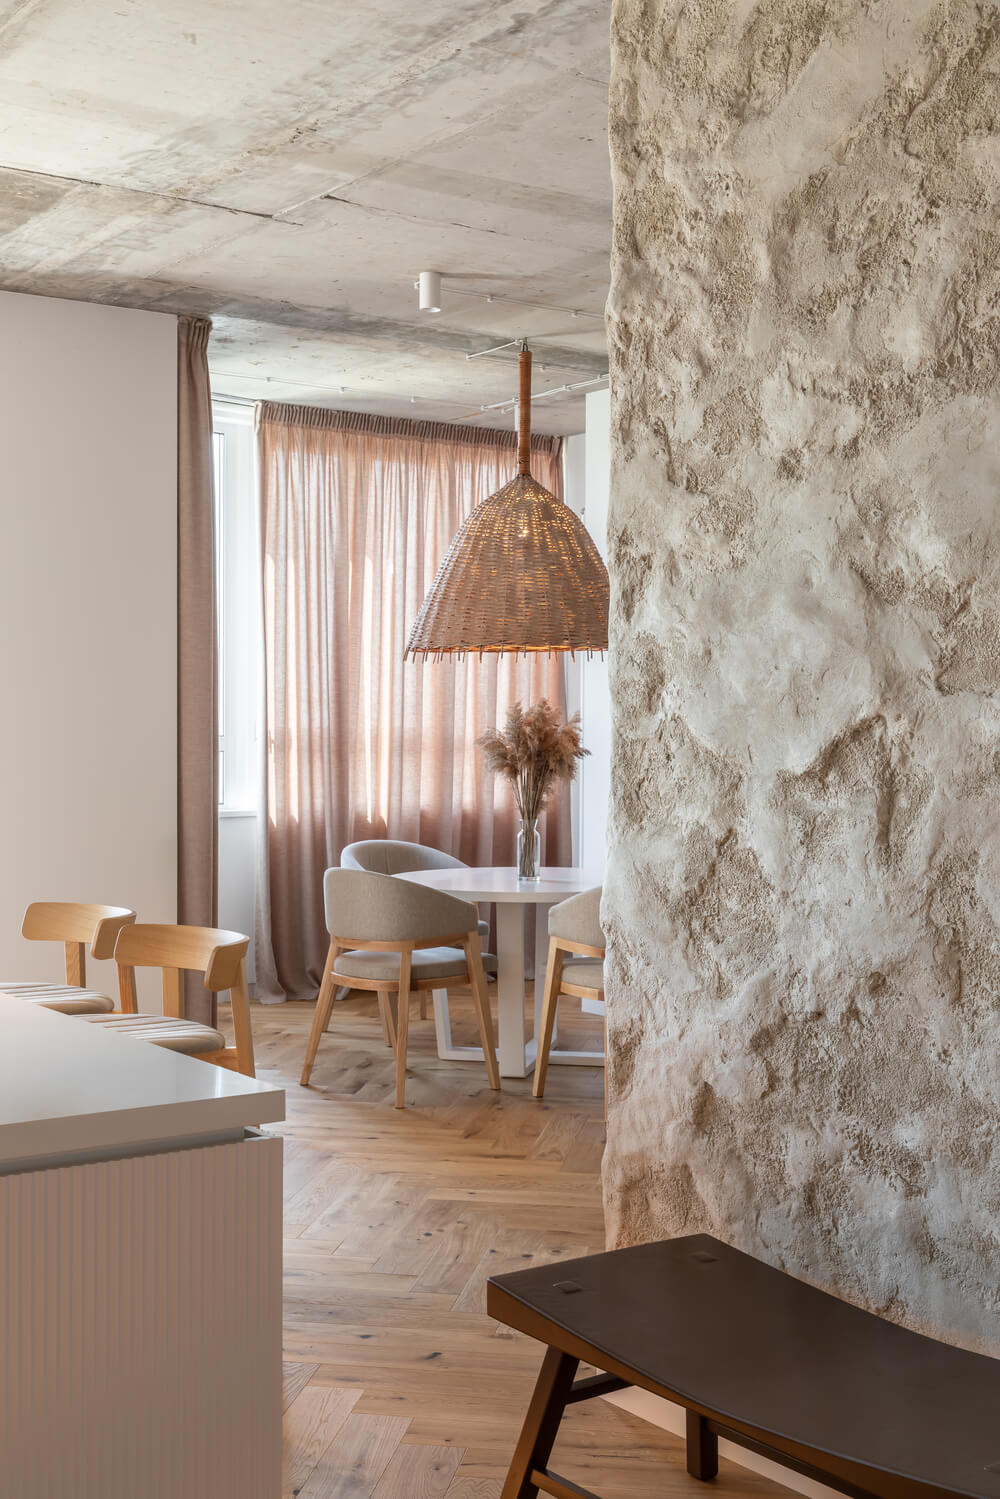 On the side of this dining room is a textured adobe wall.